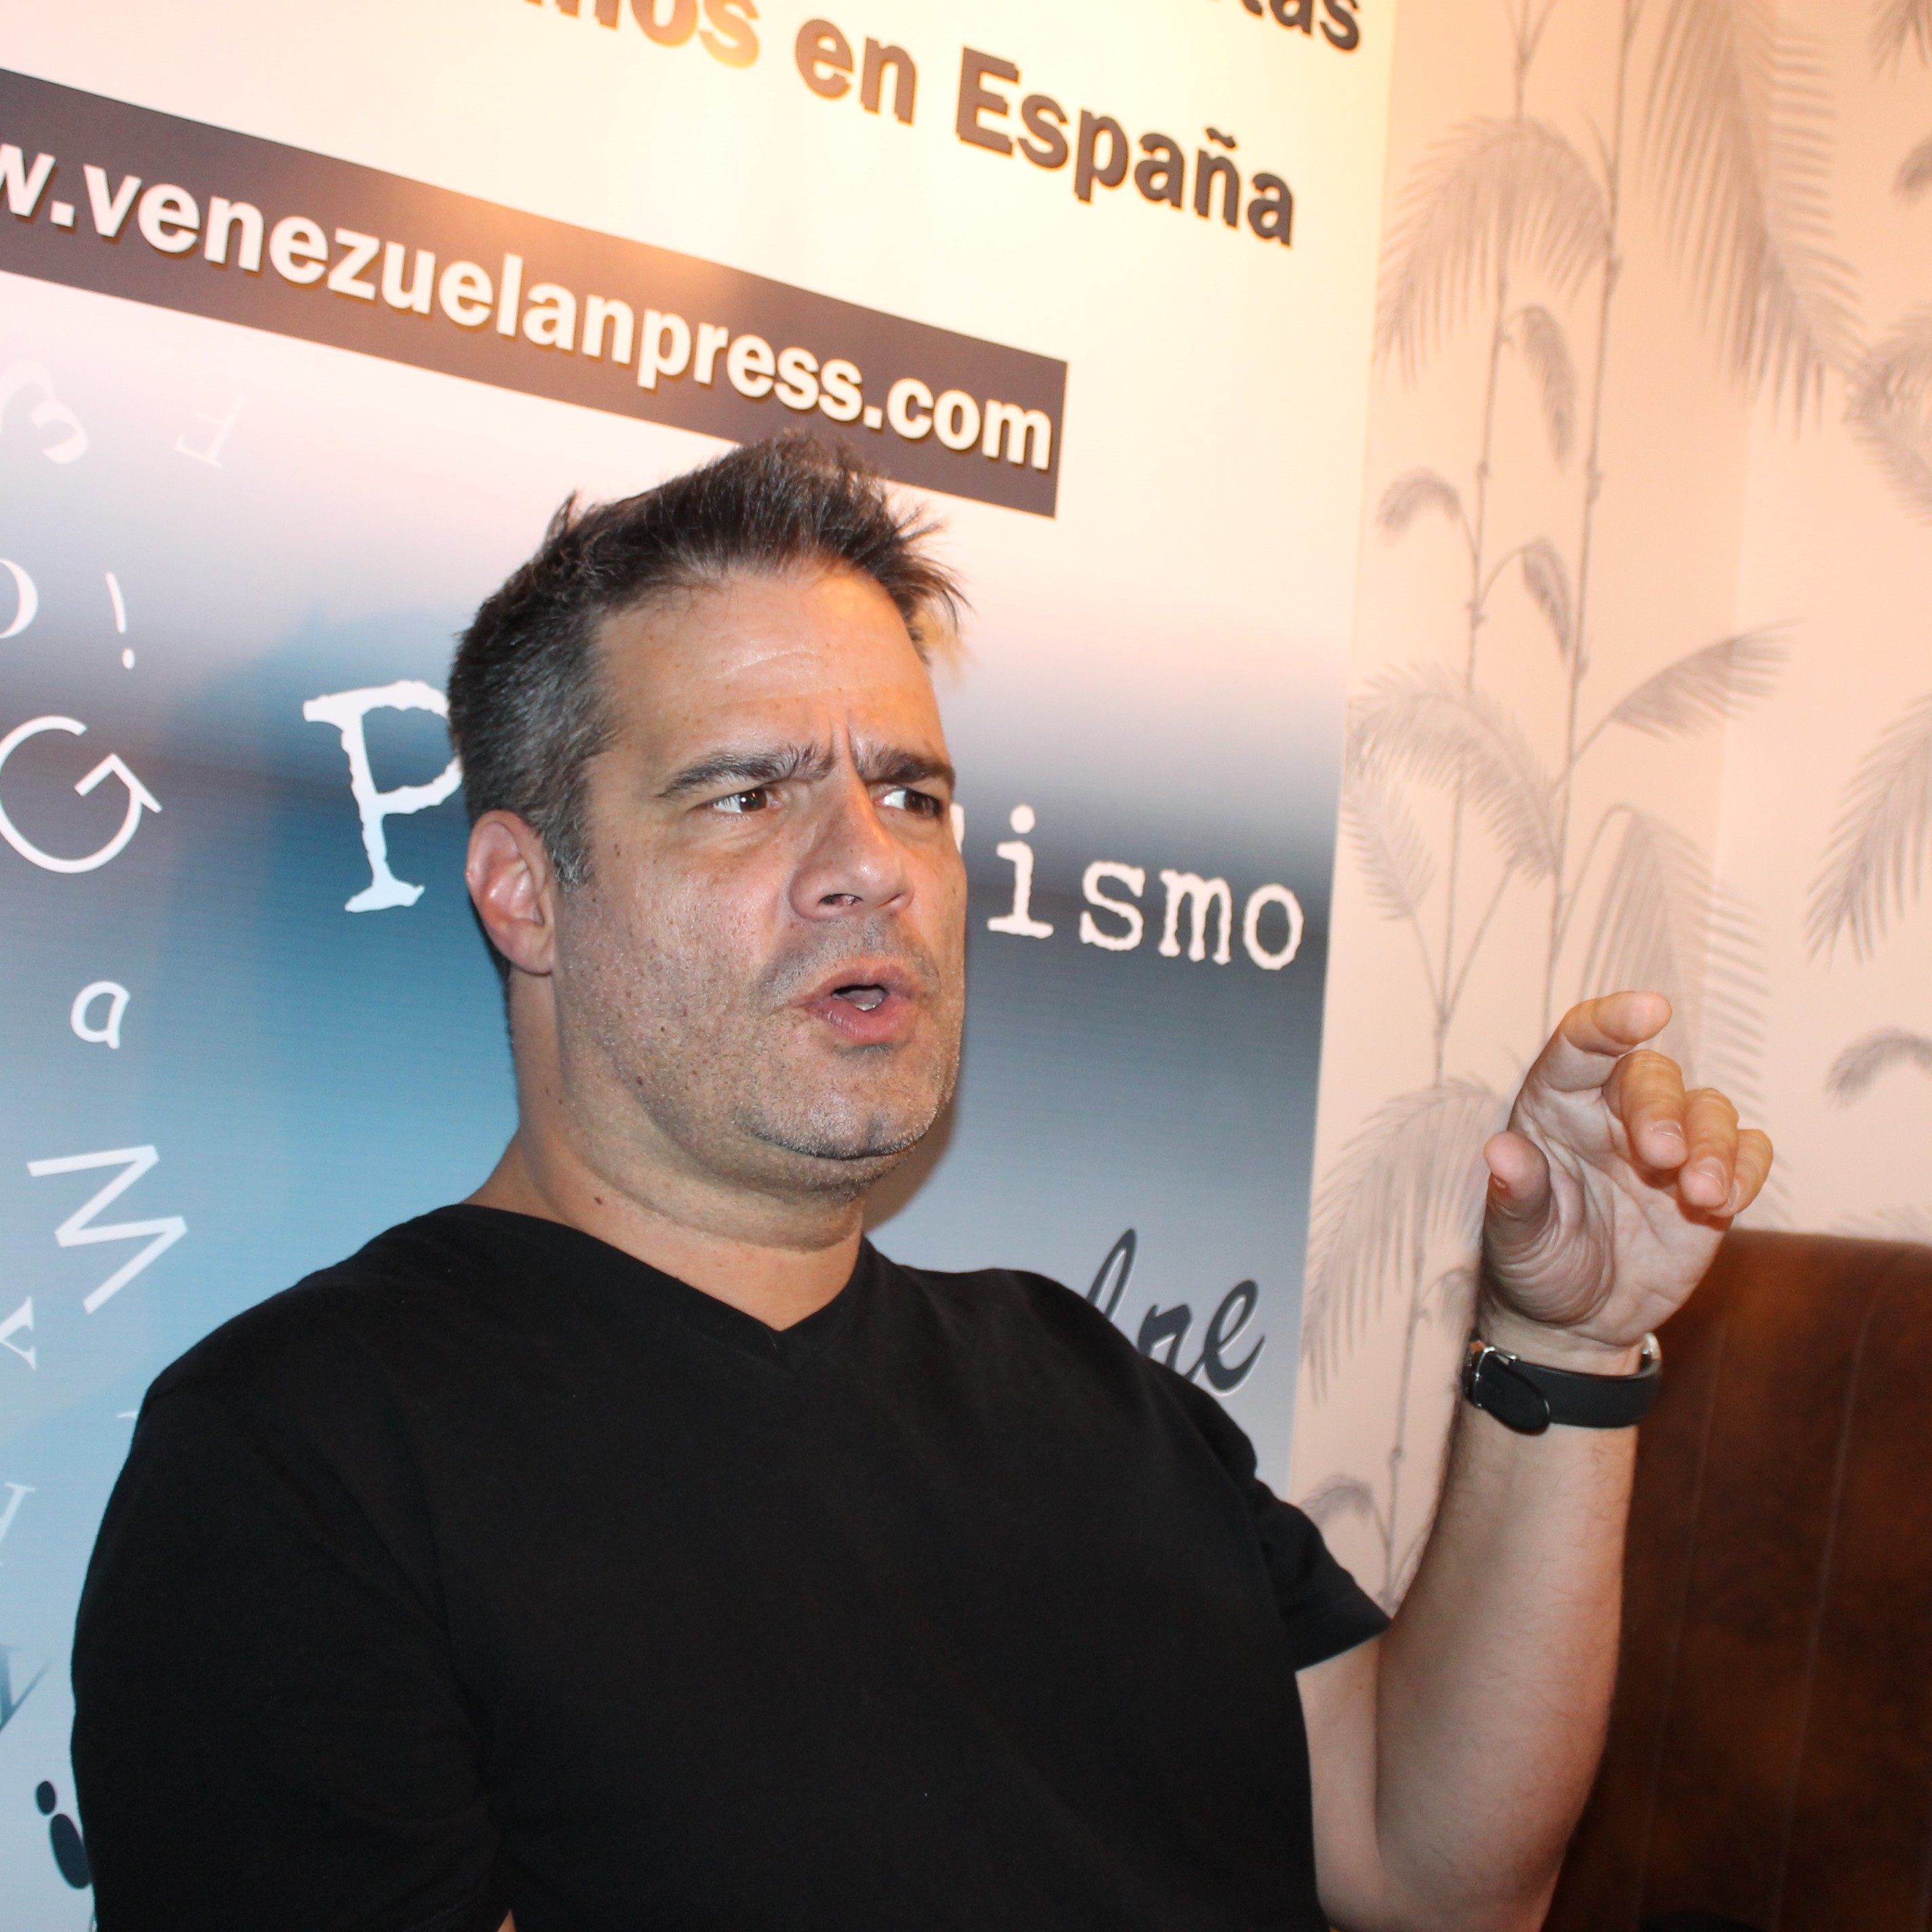 Luis Chataing